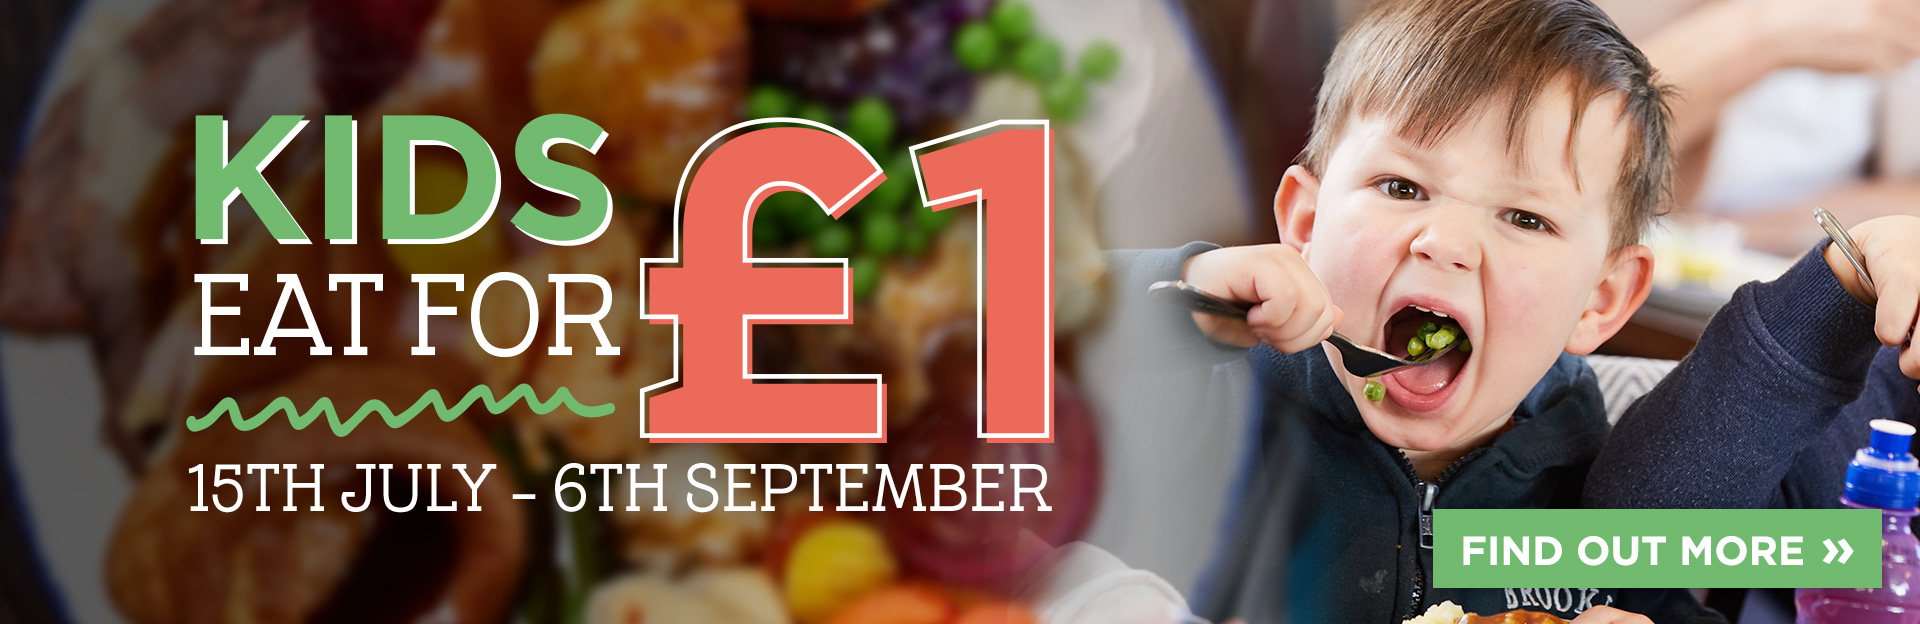 Kids Eat for £1 at The Walsgrave